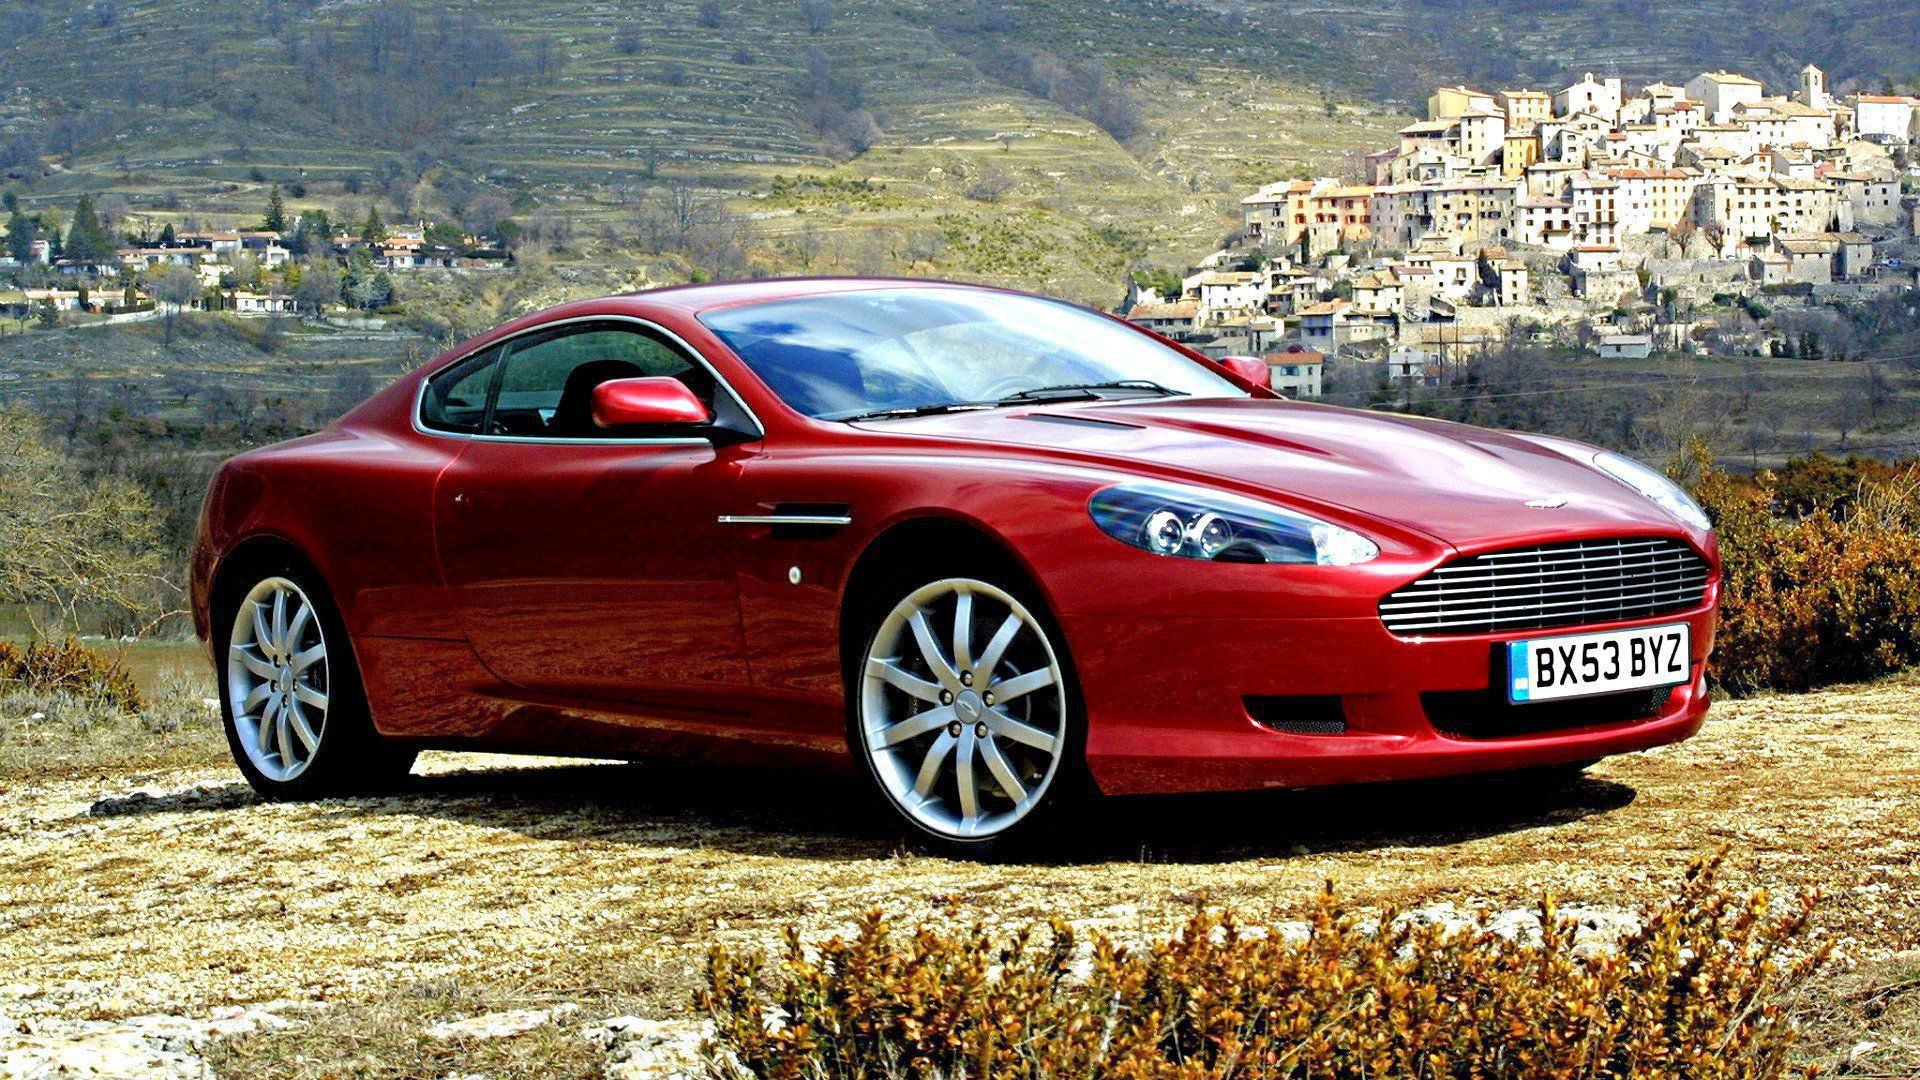 Aston Martin Db9 HD Wallpaper